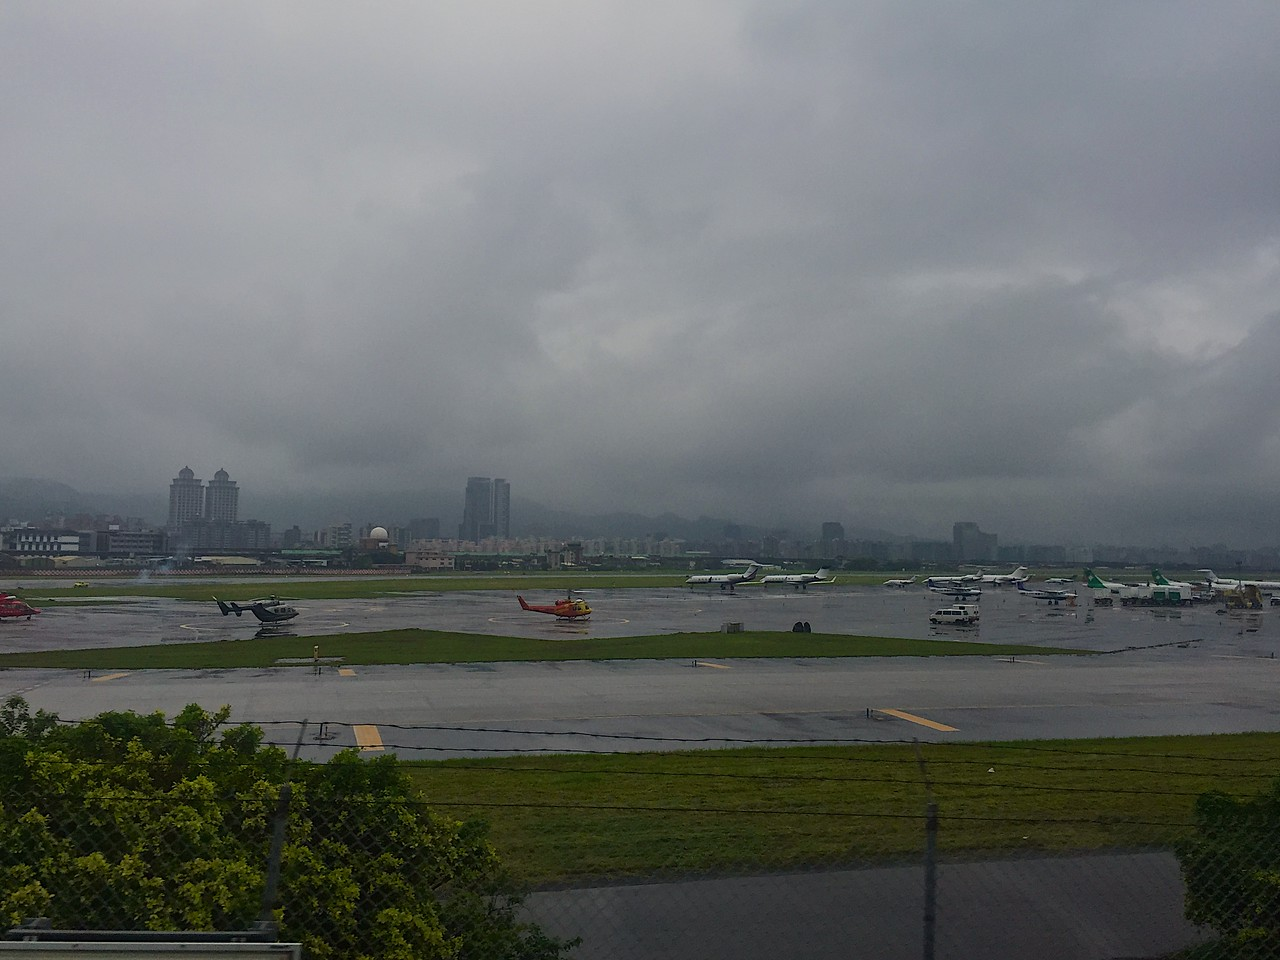 Songshan Airport in the city of Taipei has scheduled flights serving domestically in Taiwan, and also to China, South Korea and Japan<br /> <br /> Songshan Airport is also the base of certain Taiwan Air Force units.